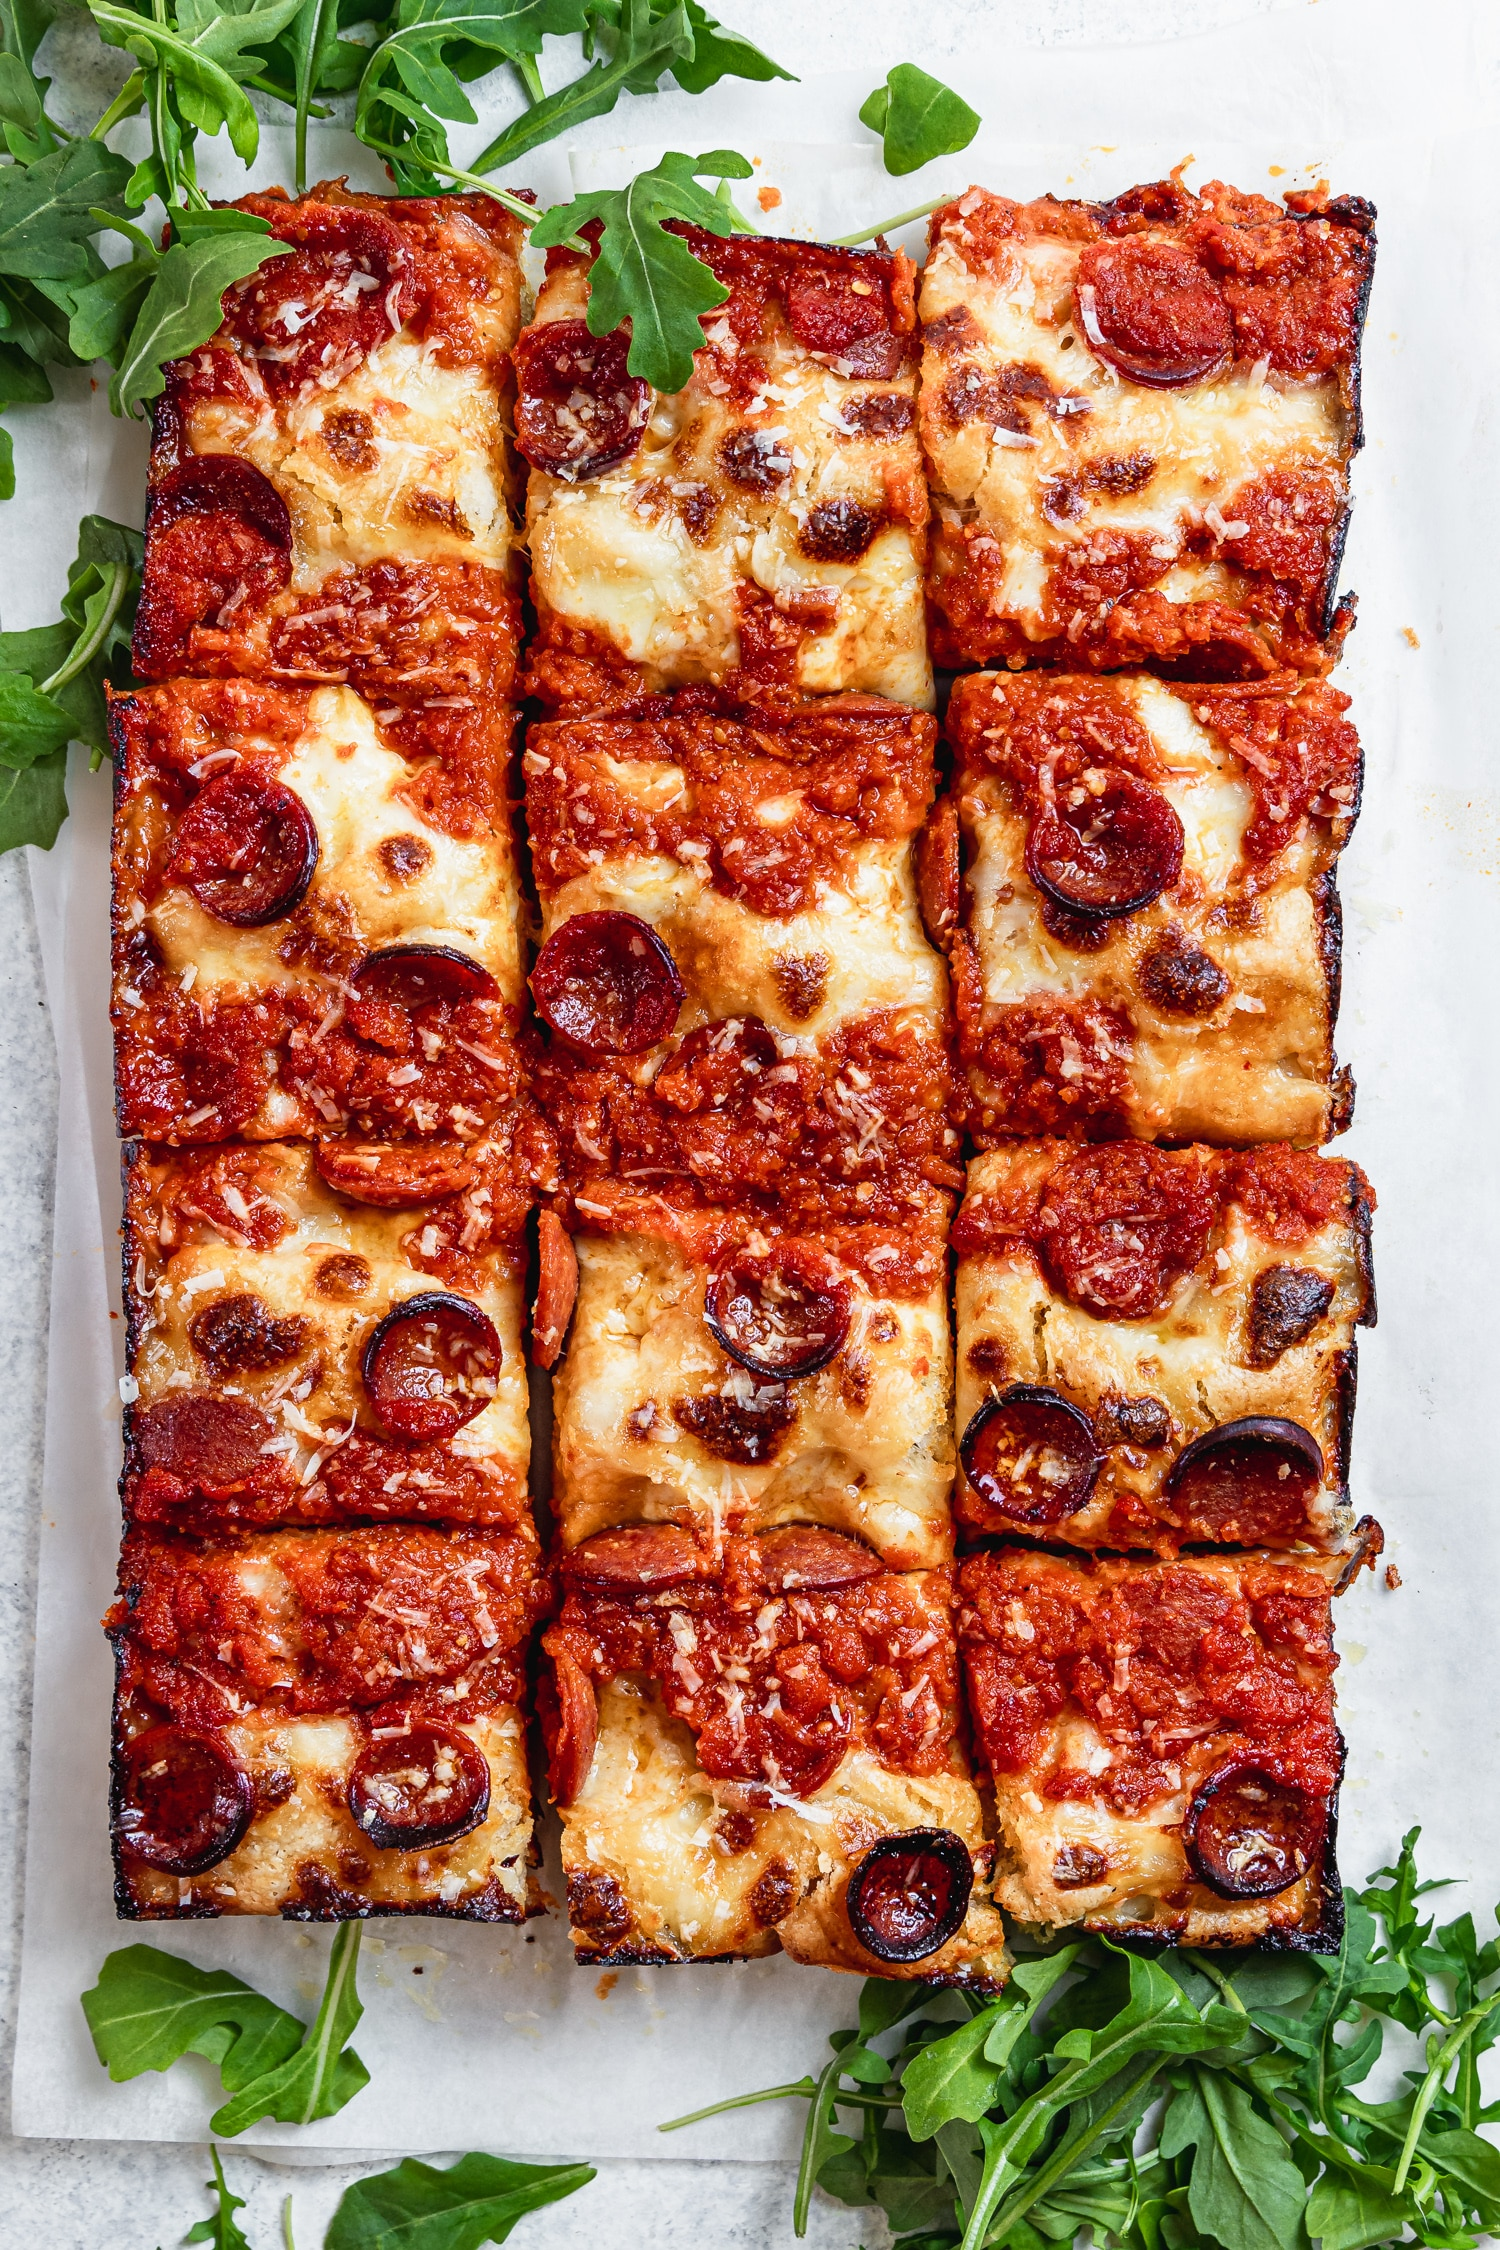 cooked detroit style pizza cut into slices